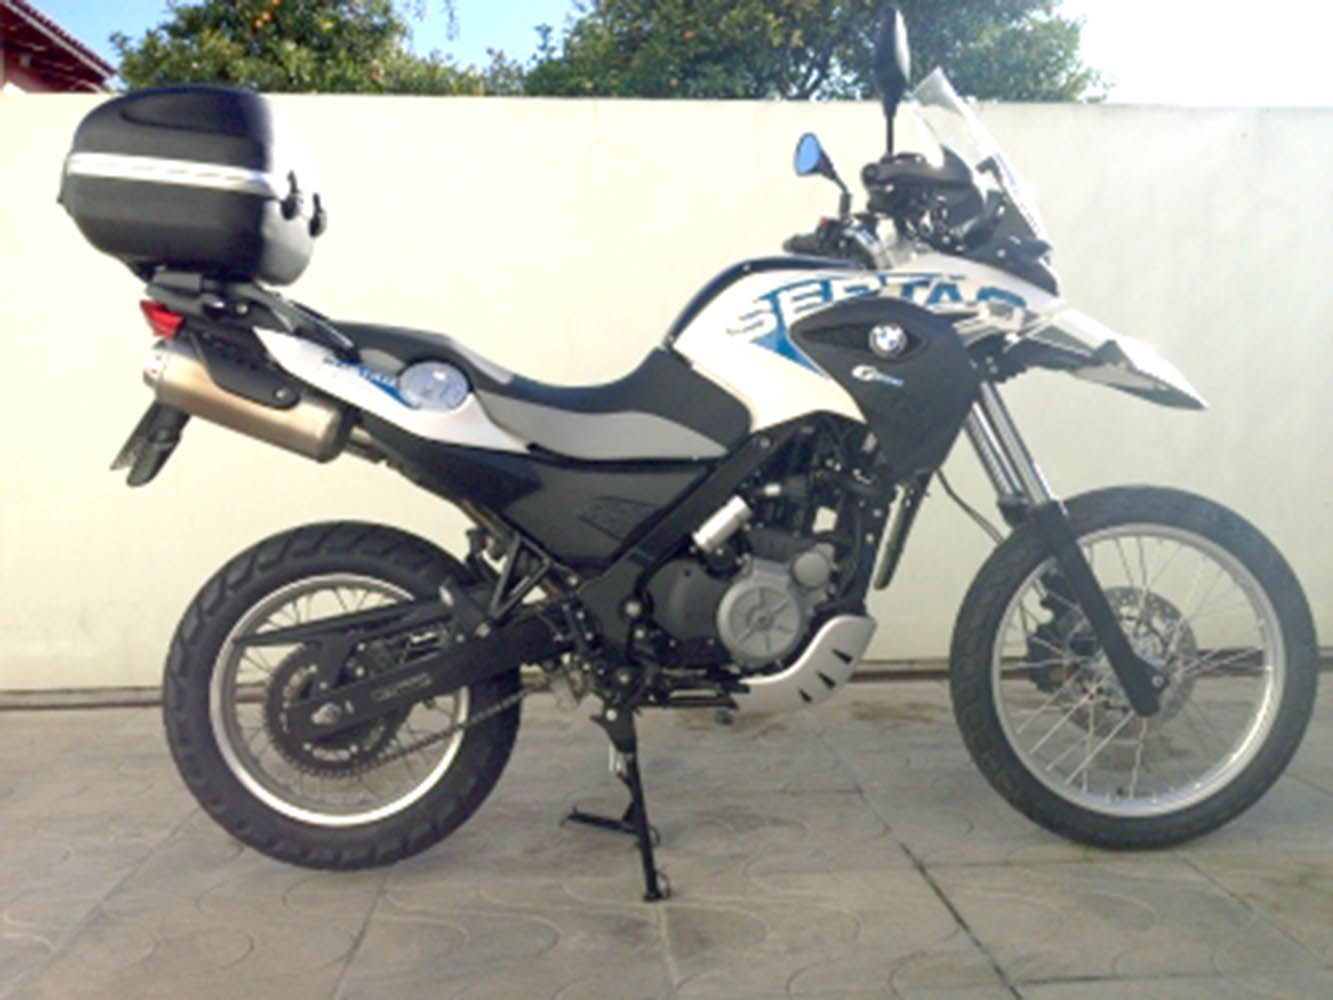 Cavalete Central Descanso Bmw G 650 Gs Sertao Preto 8062